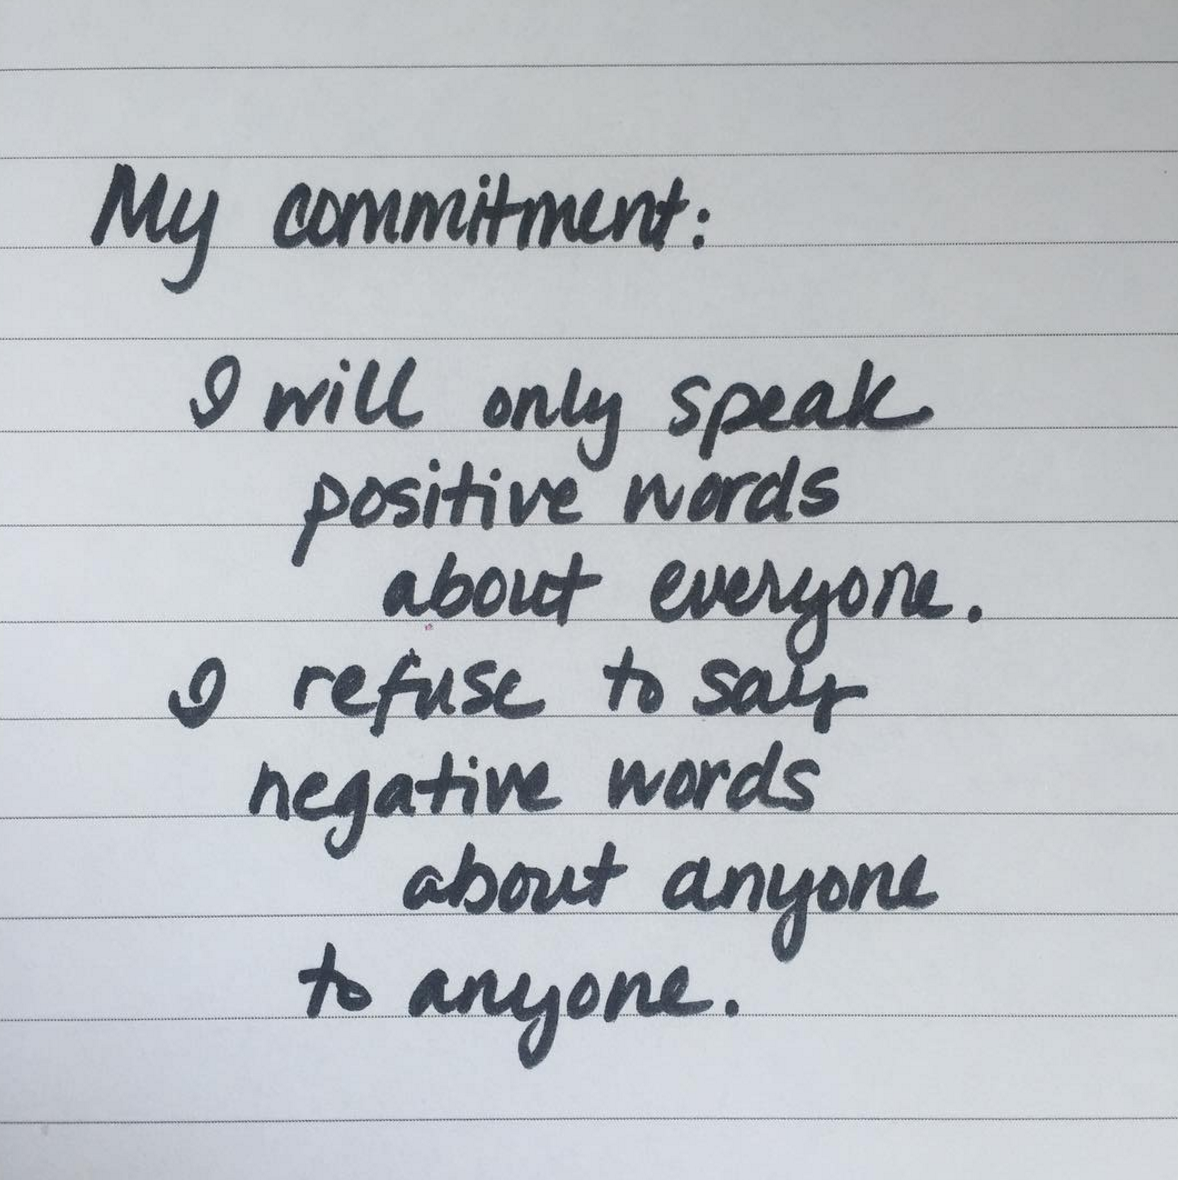 I will not speak any negative words about anyone to anyone